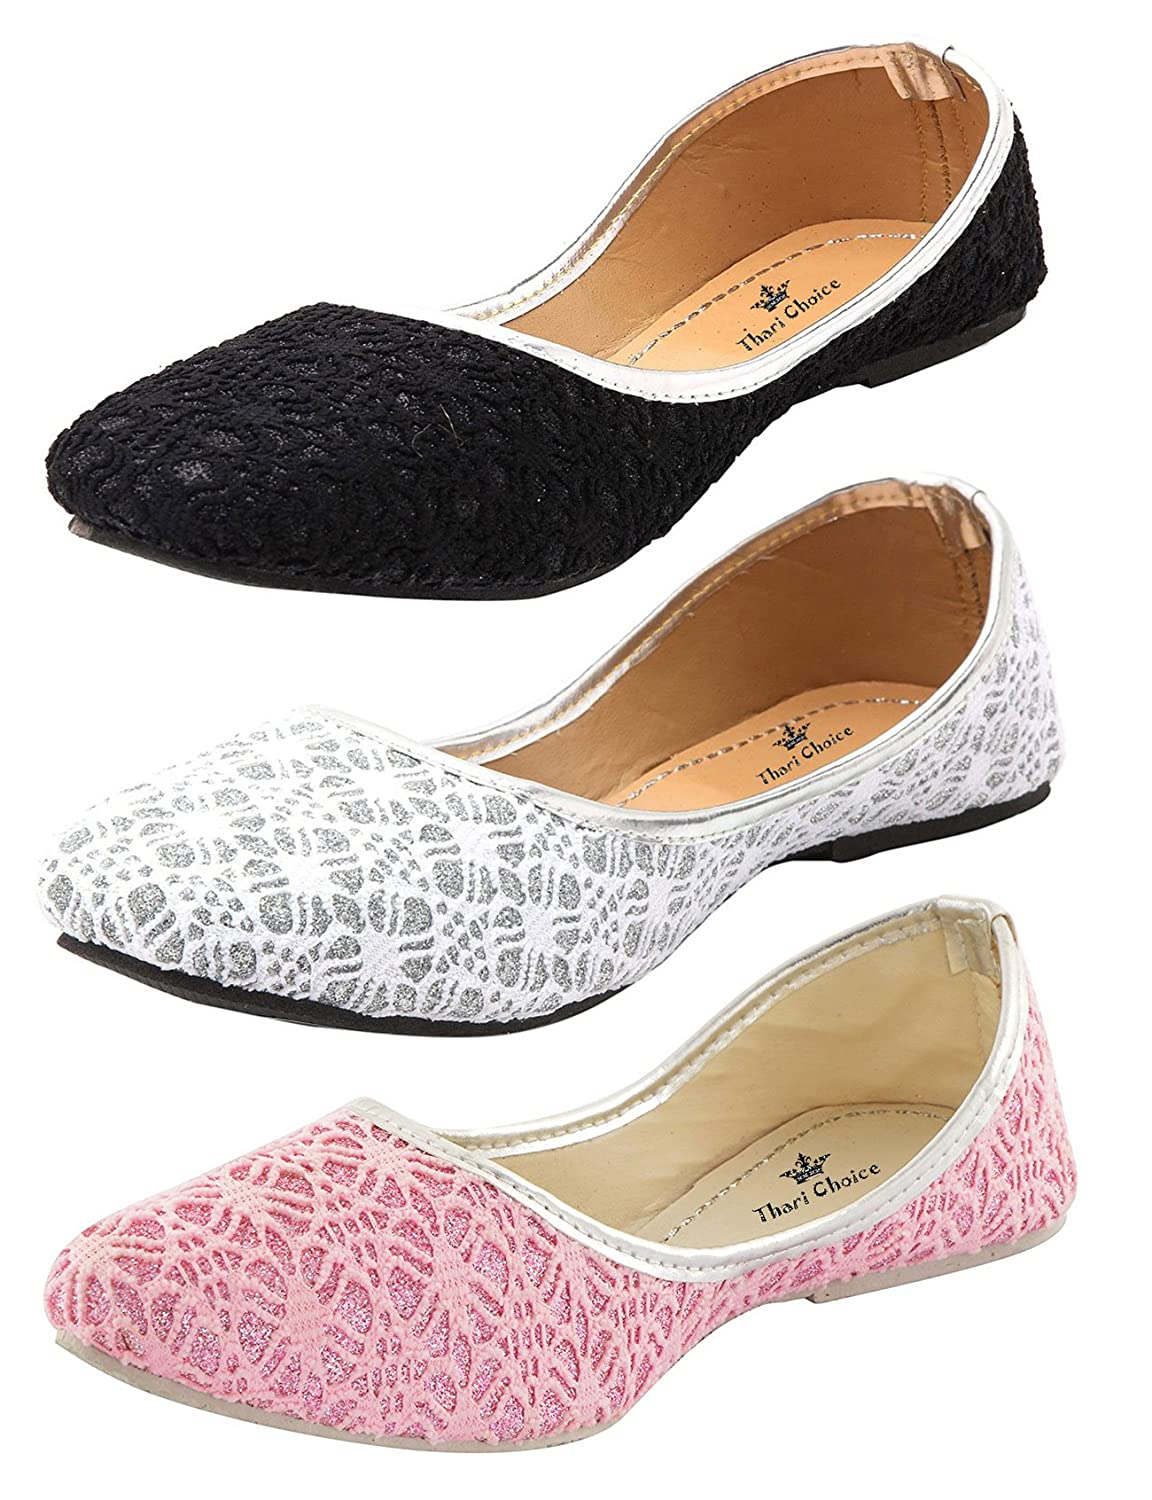 Deals on Thari Choice Woman and Girls Flat Belly shoes